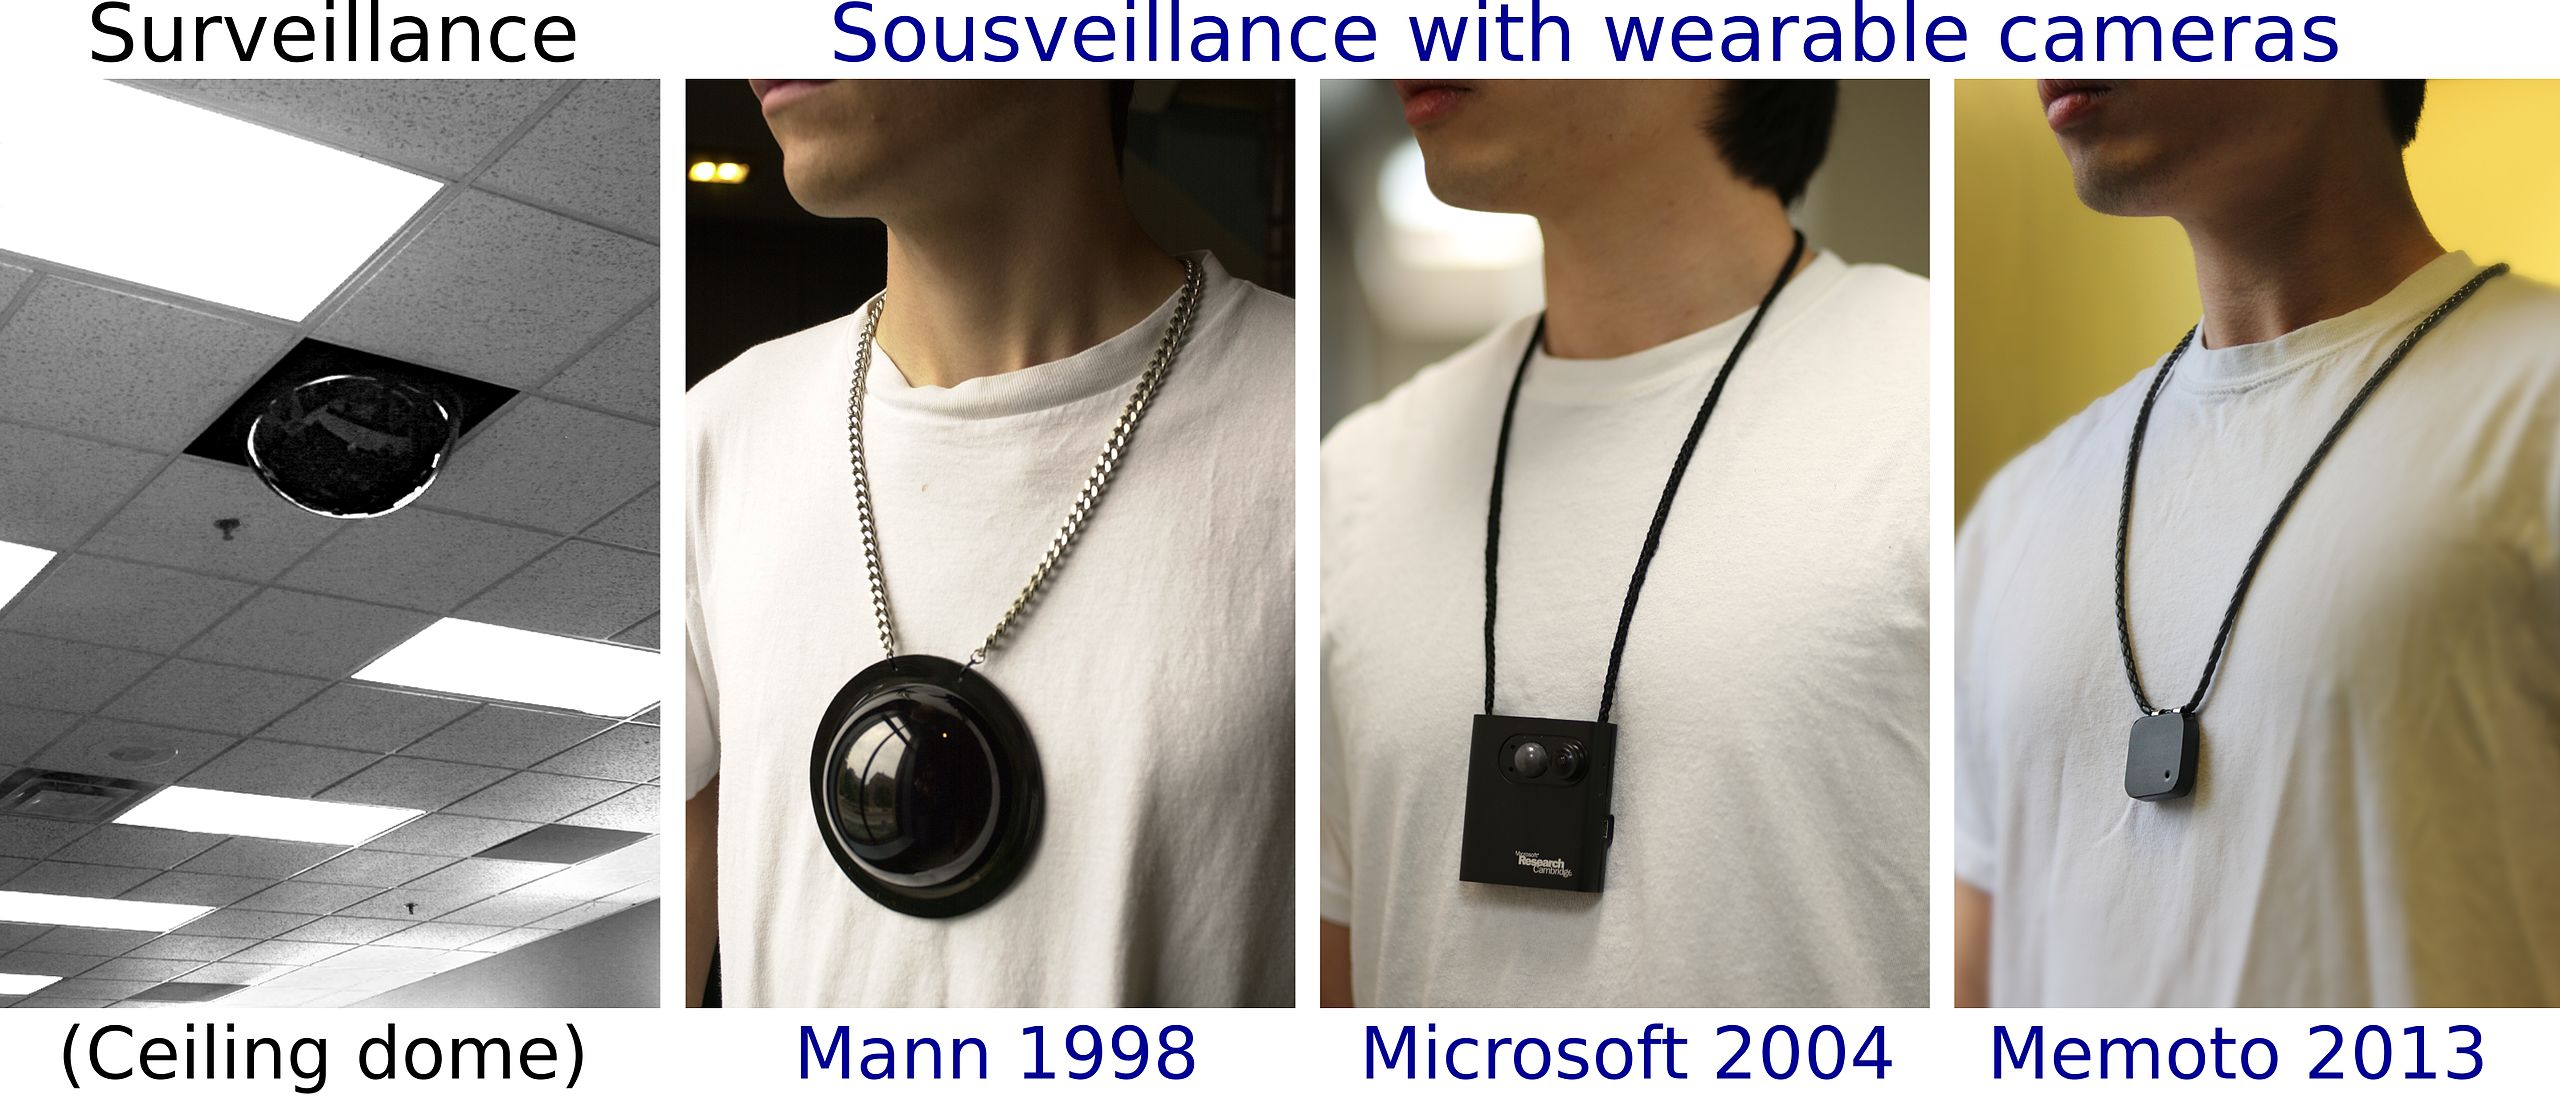 Pictures of technologies for sousveillance from 1998 to 2013